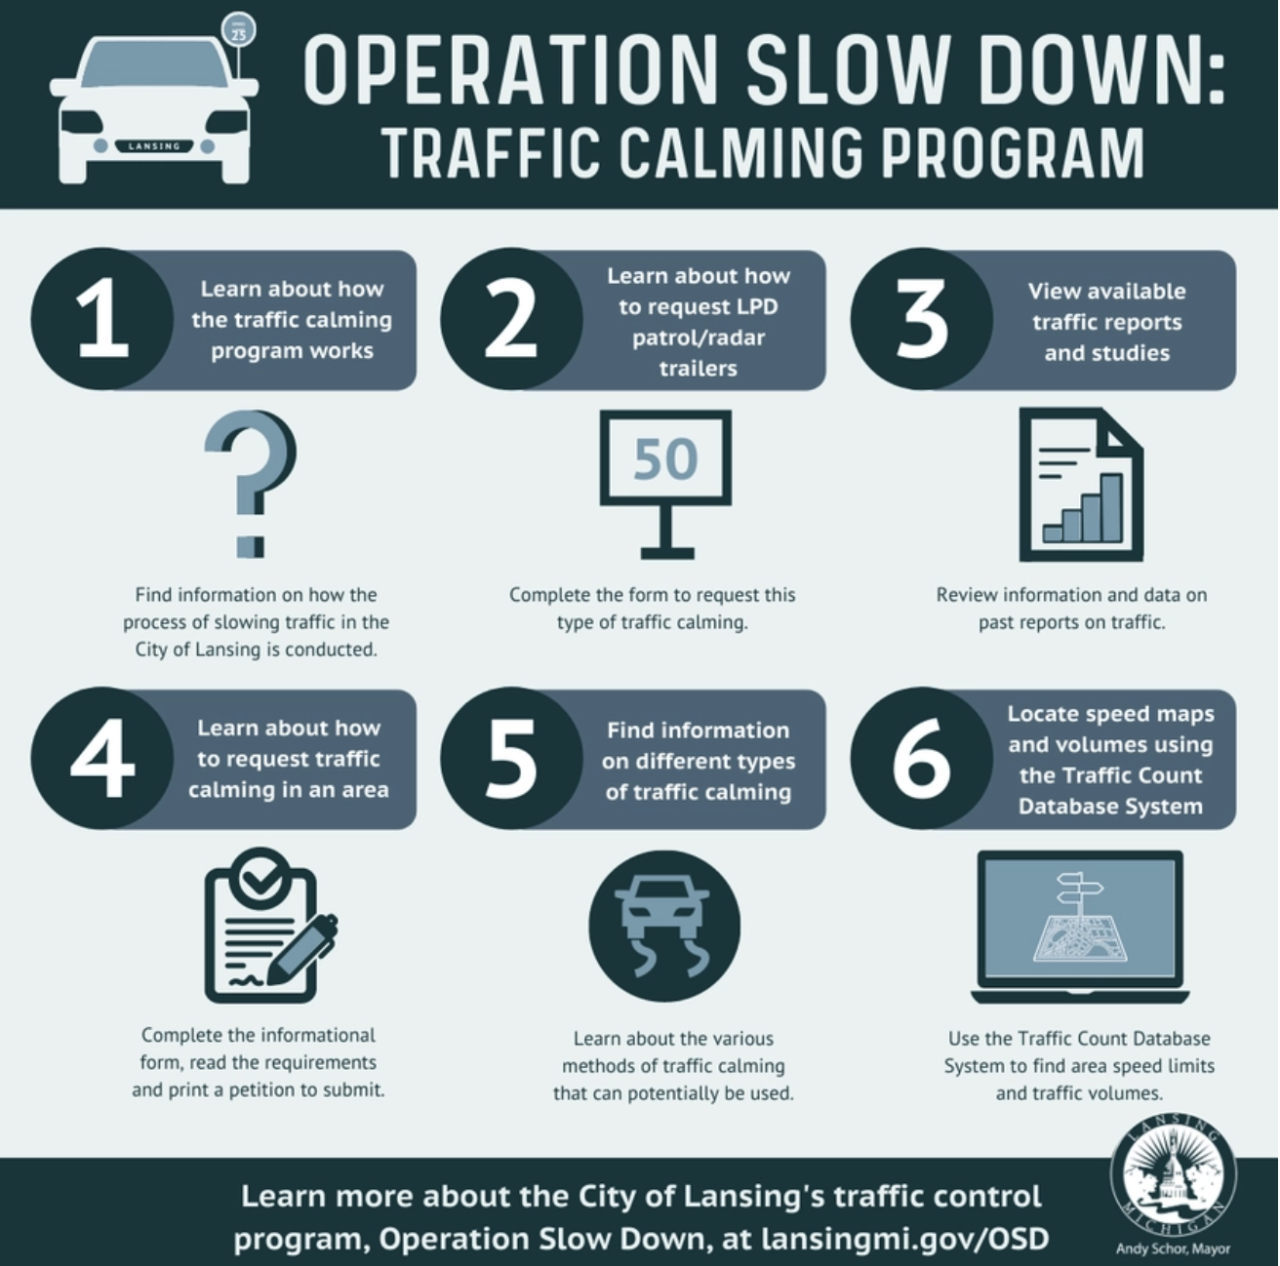 Operation Slow Down